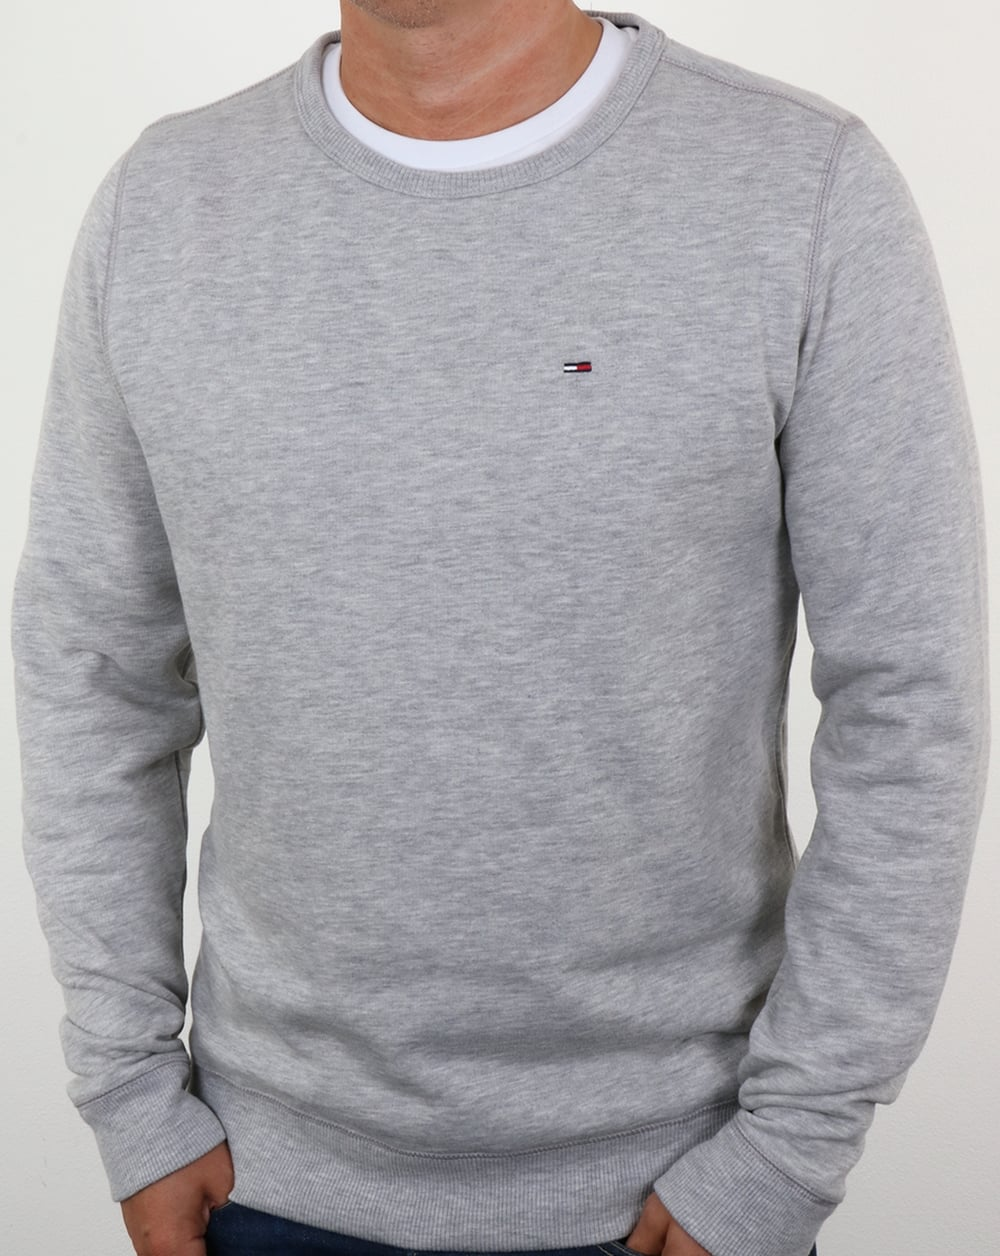 tommy hilfiger cotton fleece sweatshirt light grey heather jumper mens. Black Bedroom Furniture Sets. Home Design Ideas